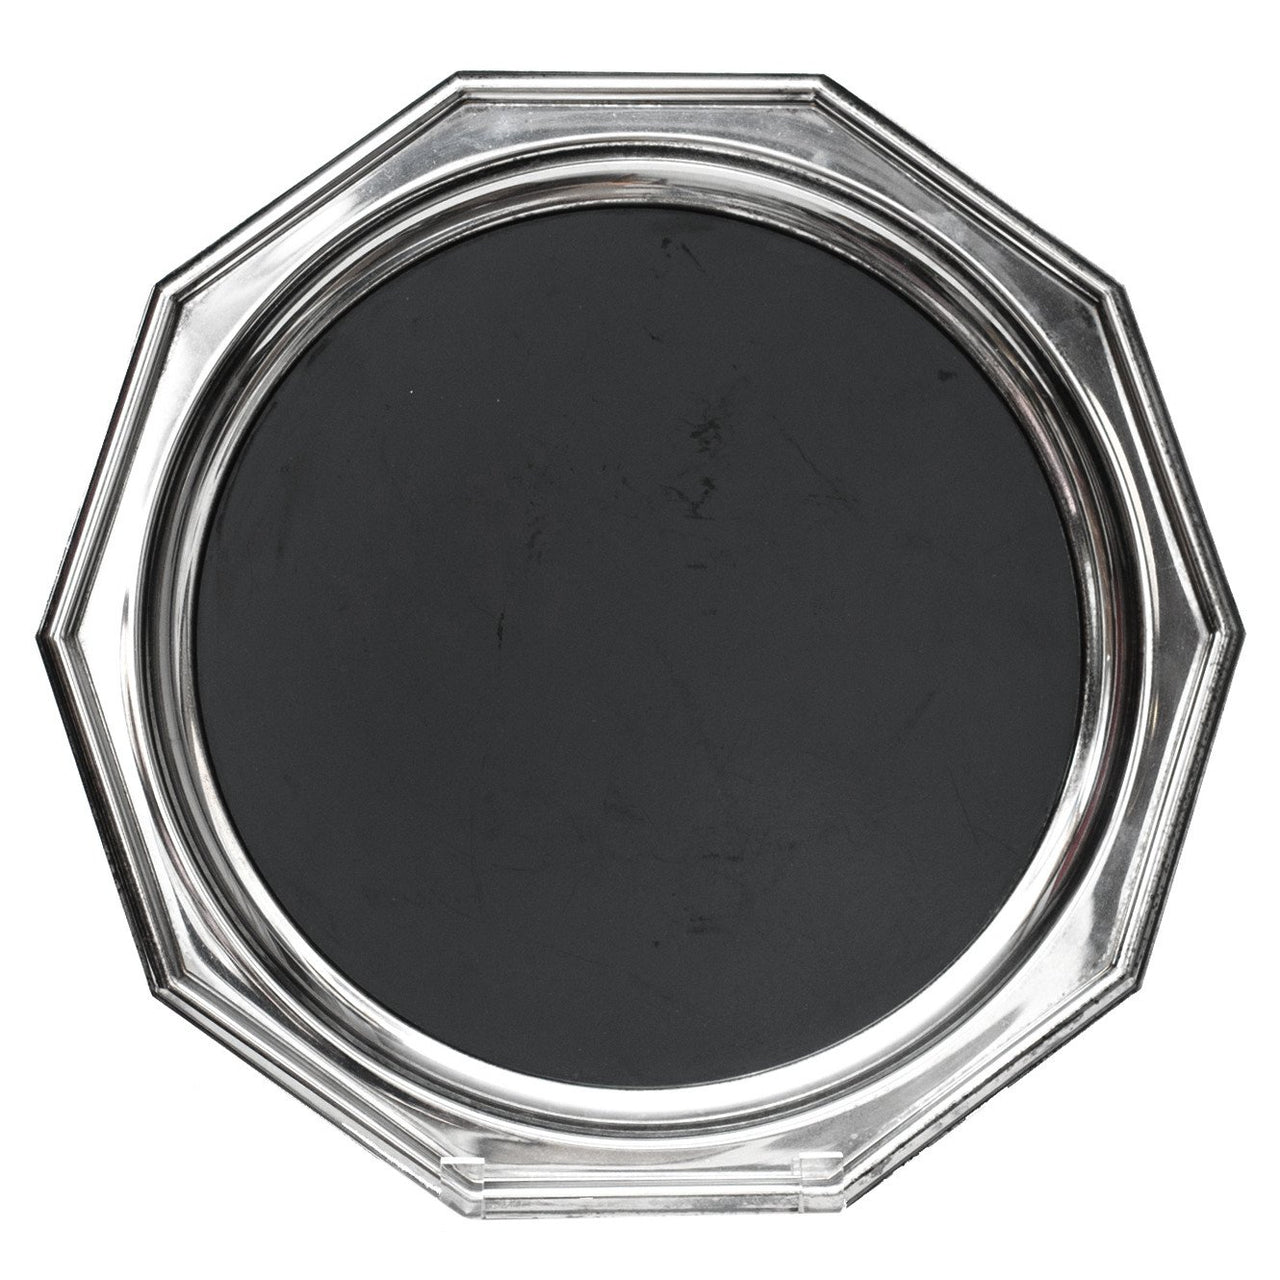 Sheffield Black & Silverplate Tray, The Hour Shop Vintage Barware